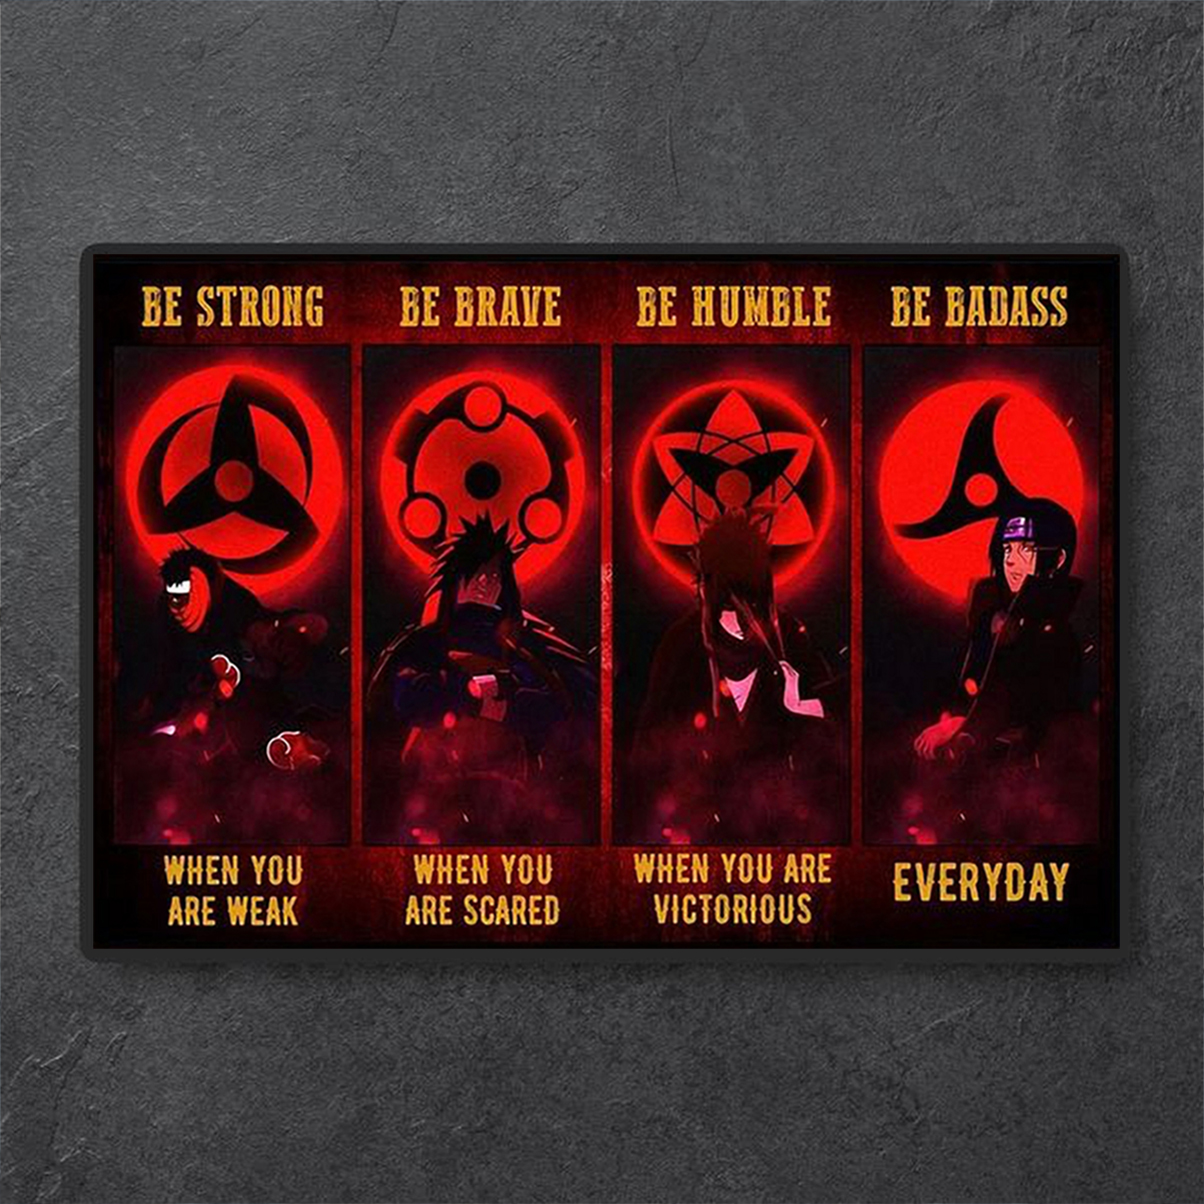 Uchiha be strong be brave be humble be badass poster A3